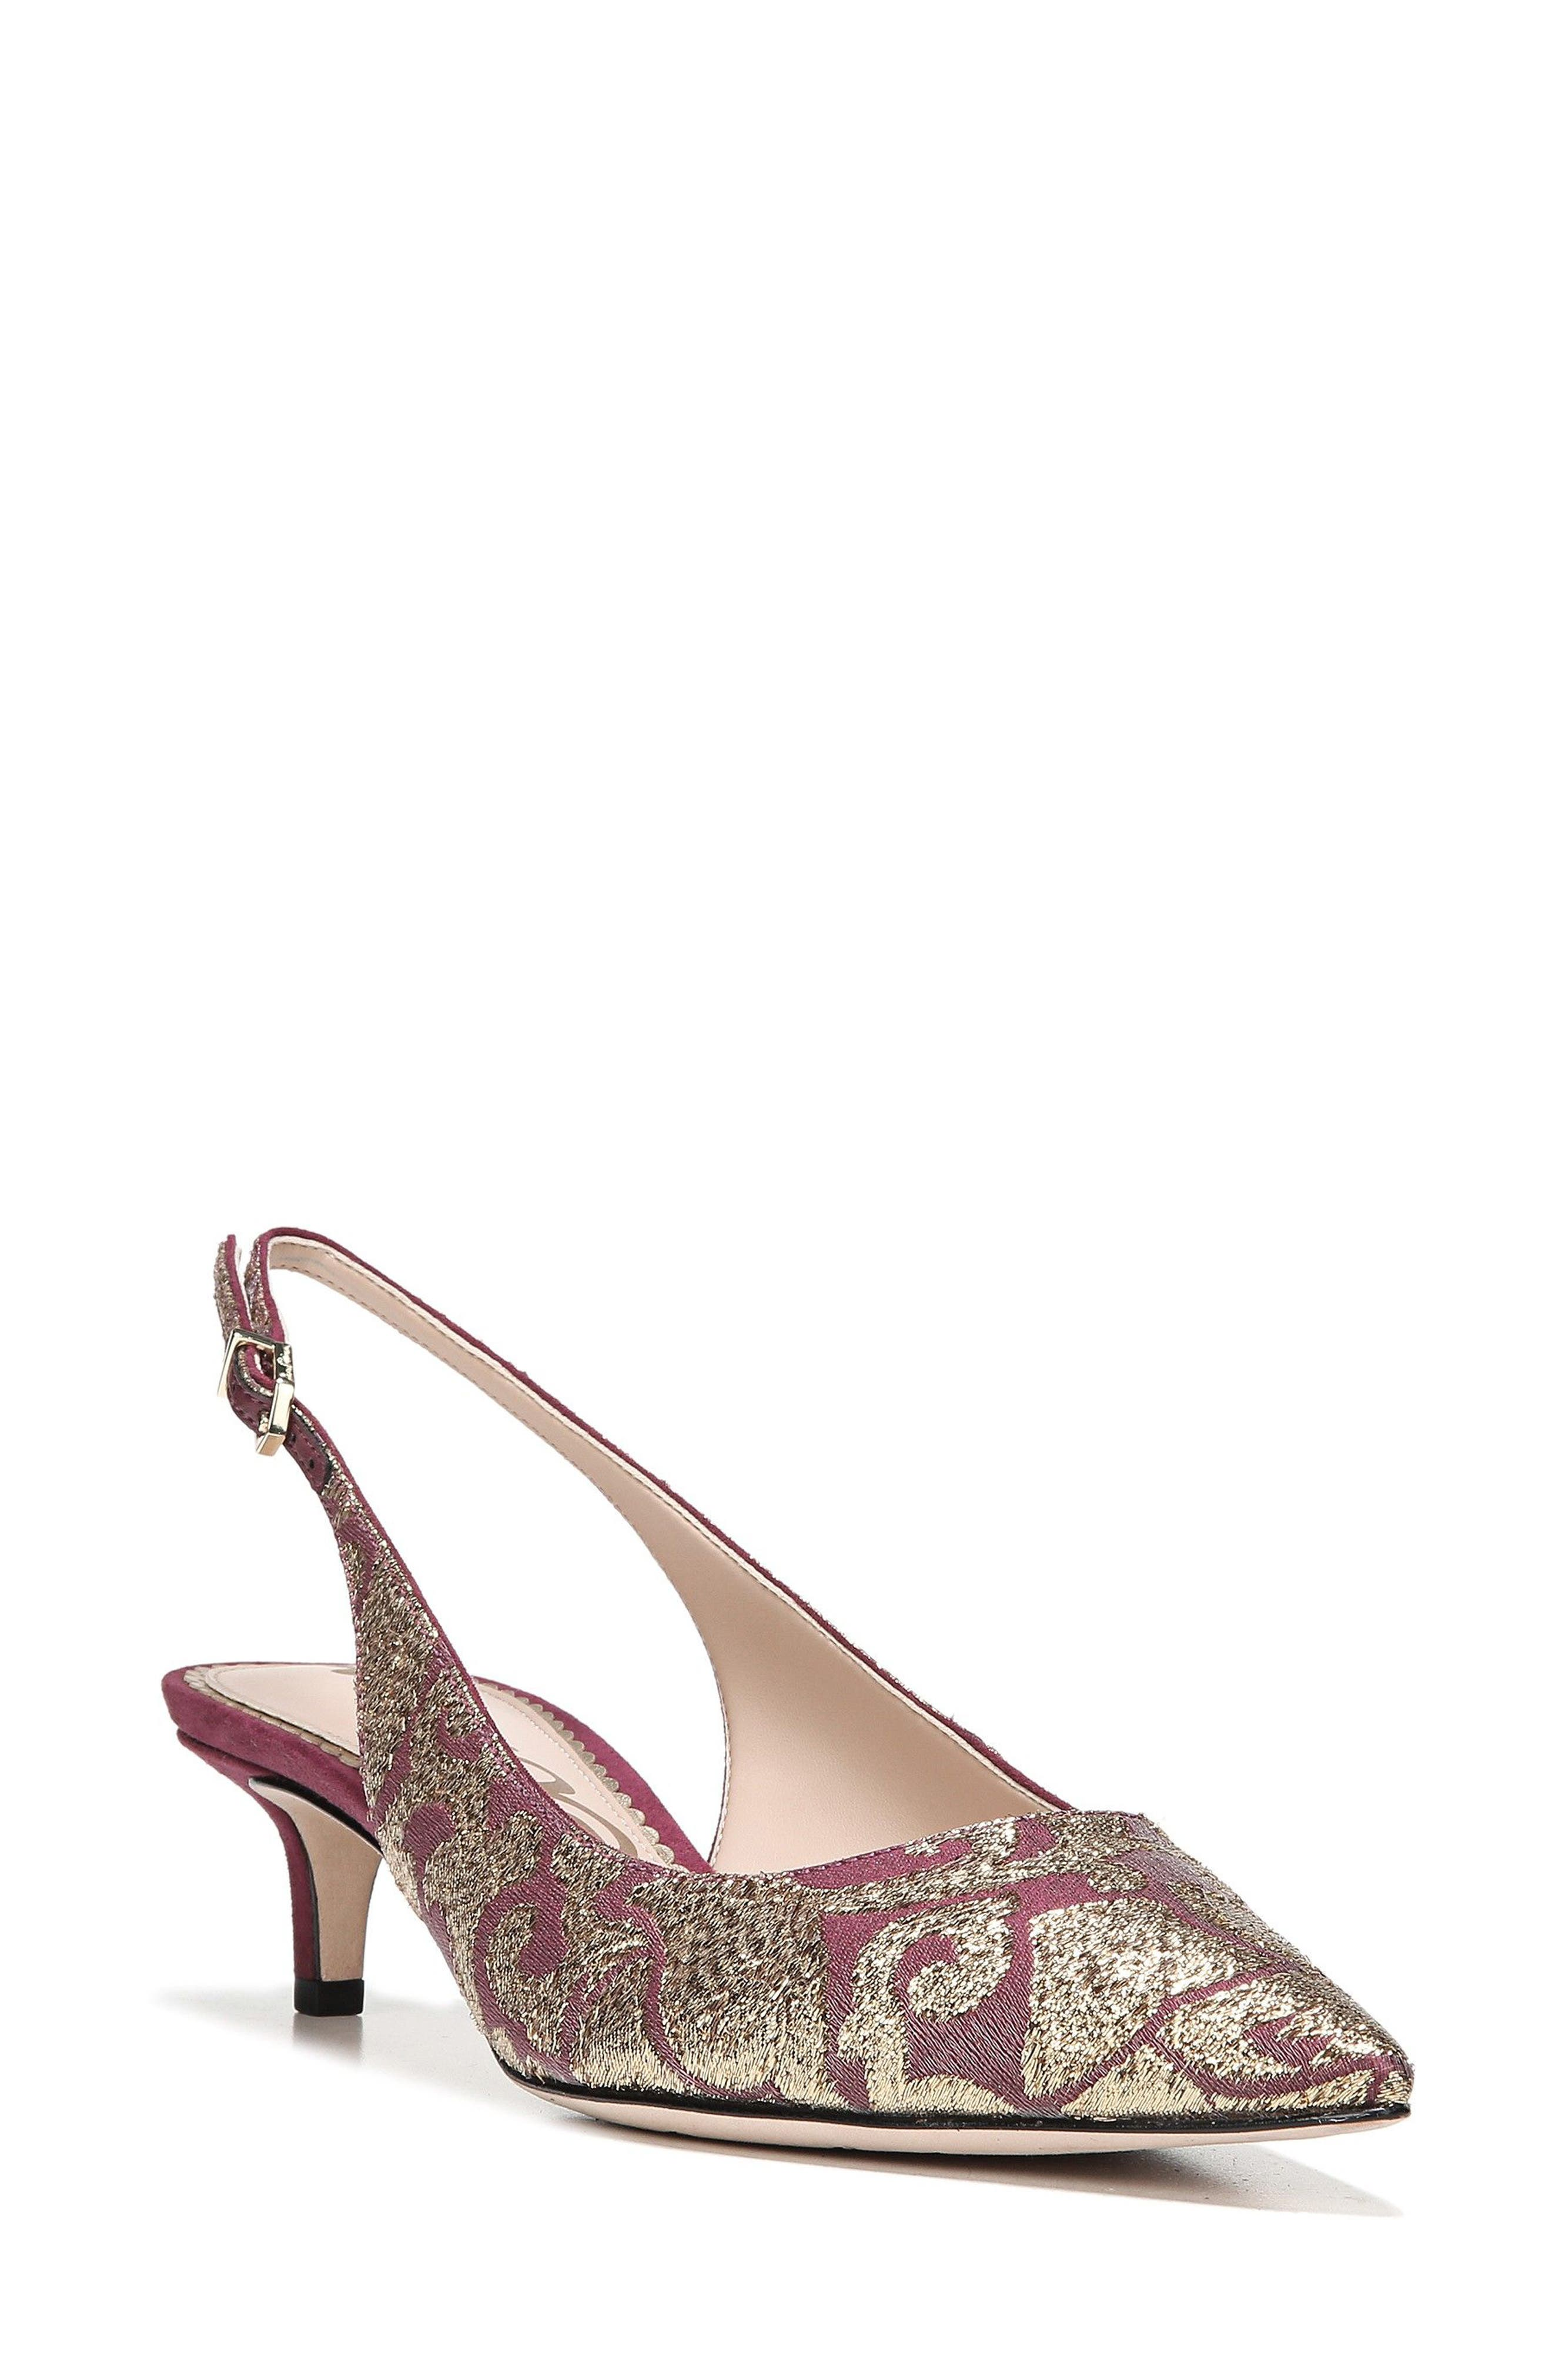 Alternate Image 1 Selected - Sam Edelman Ludlow Slingback Pump (Women)